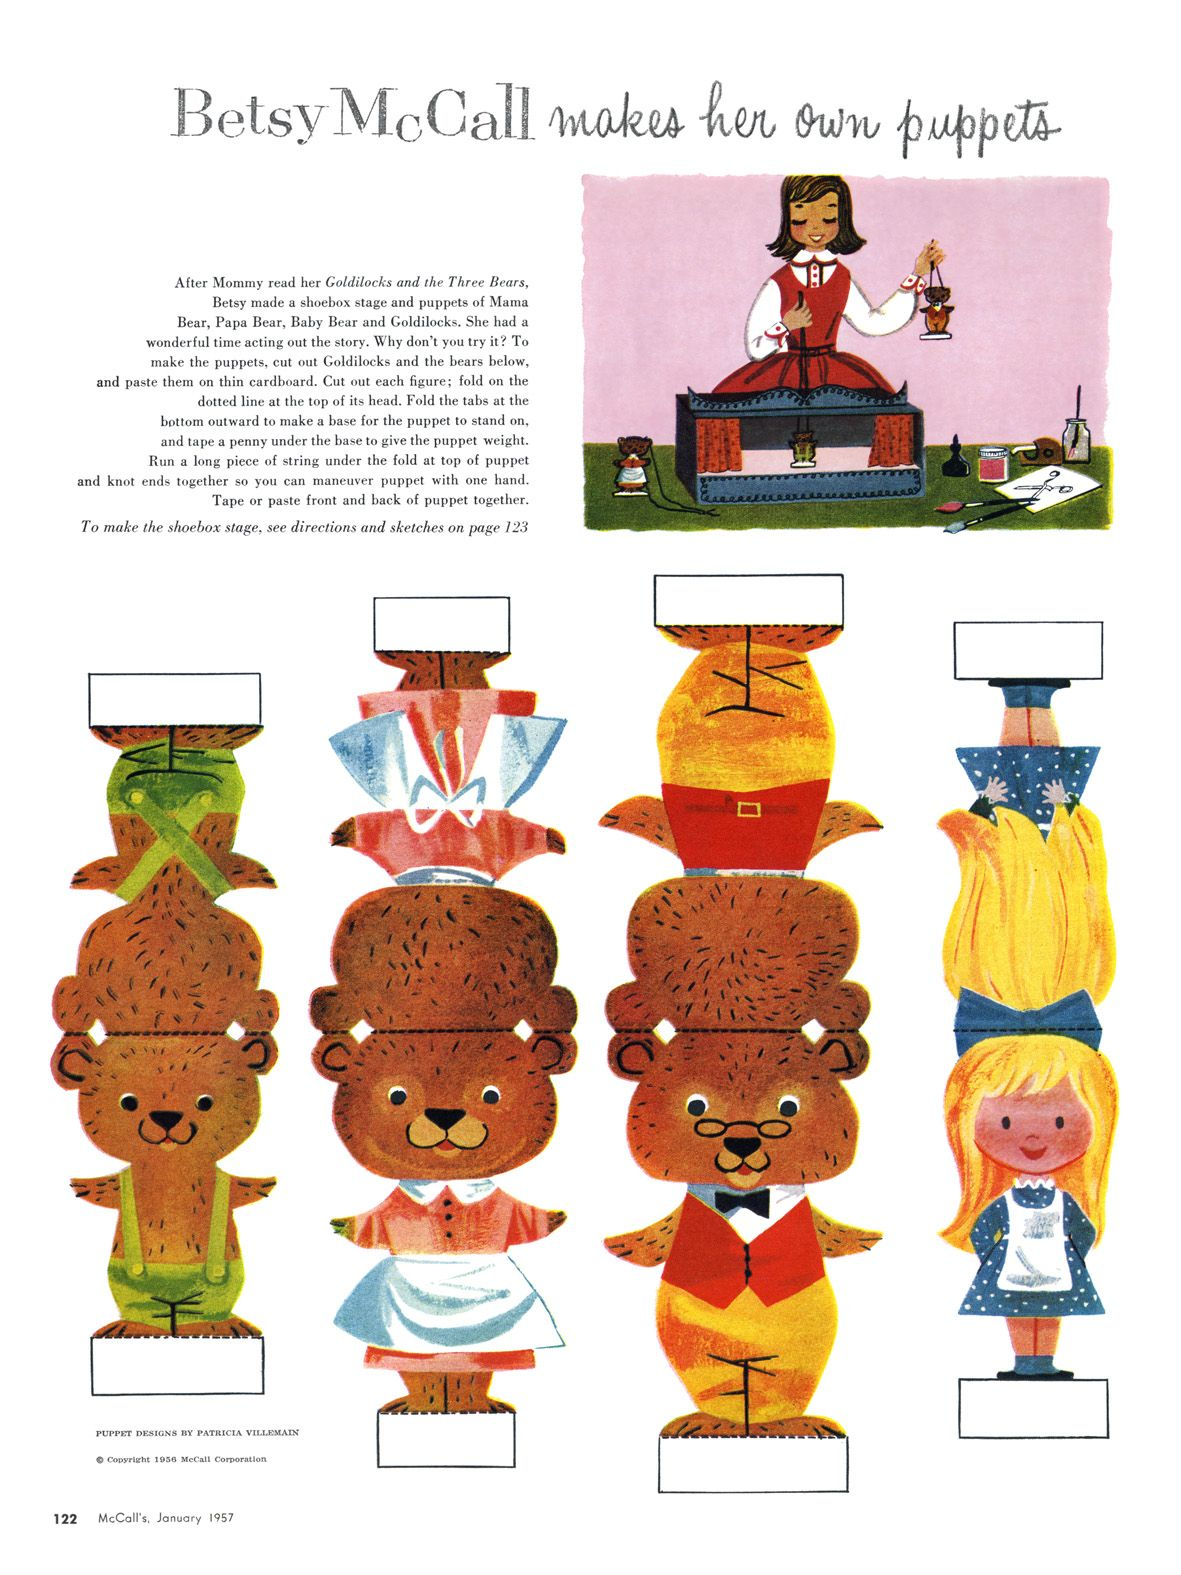 puppets. when I was a kid we stuffed them with a bit of tissue before stapling the sides together, to give them a little dimension